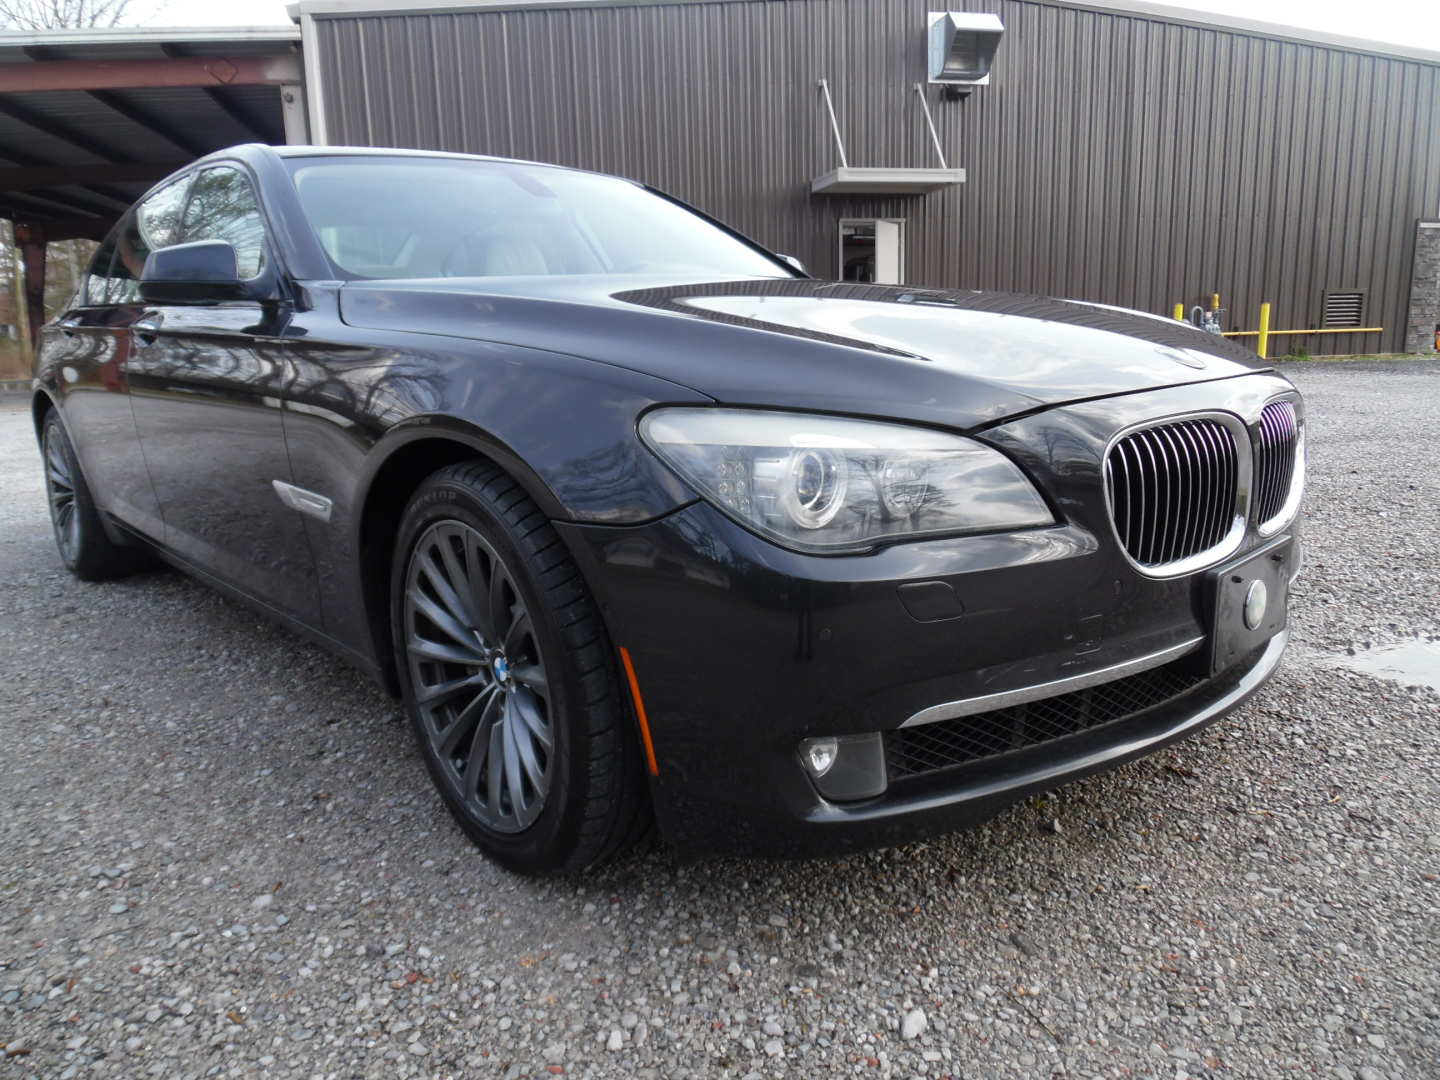 3rd Image of a 2009 BMW 750IL